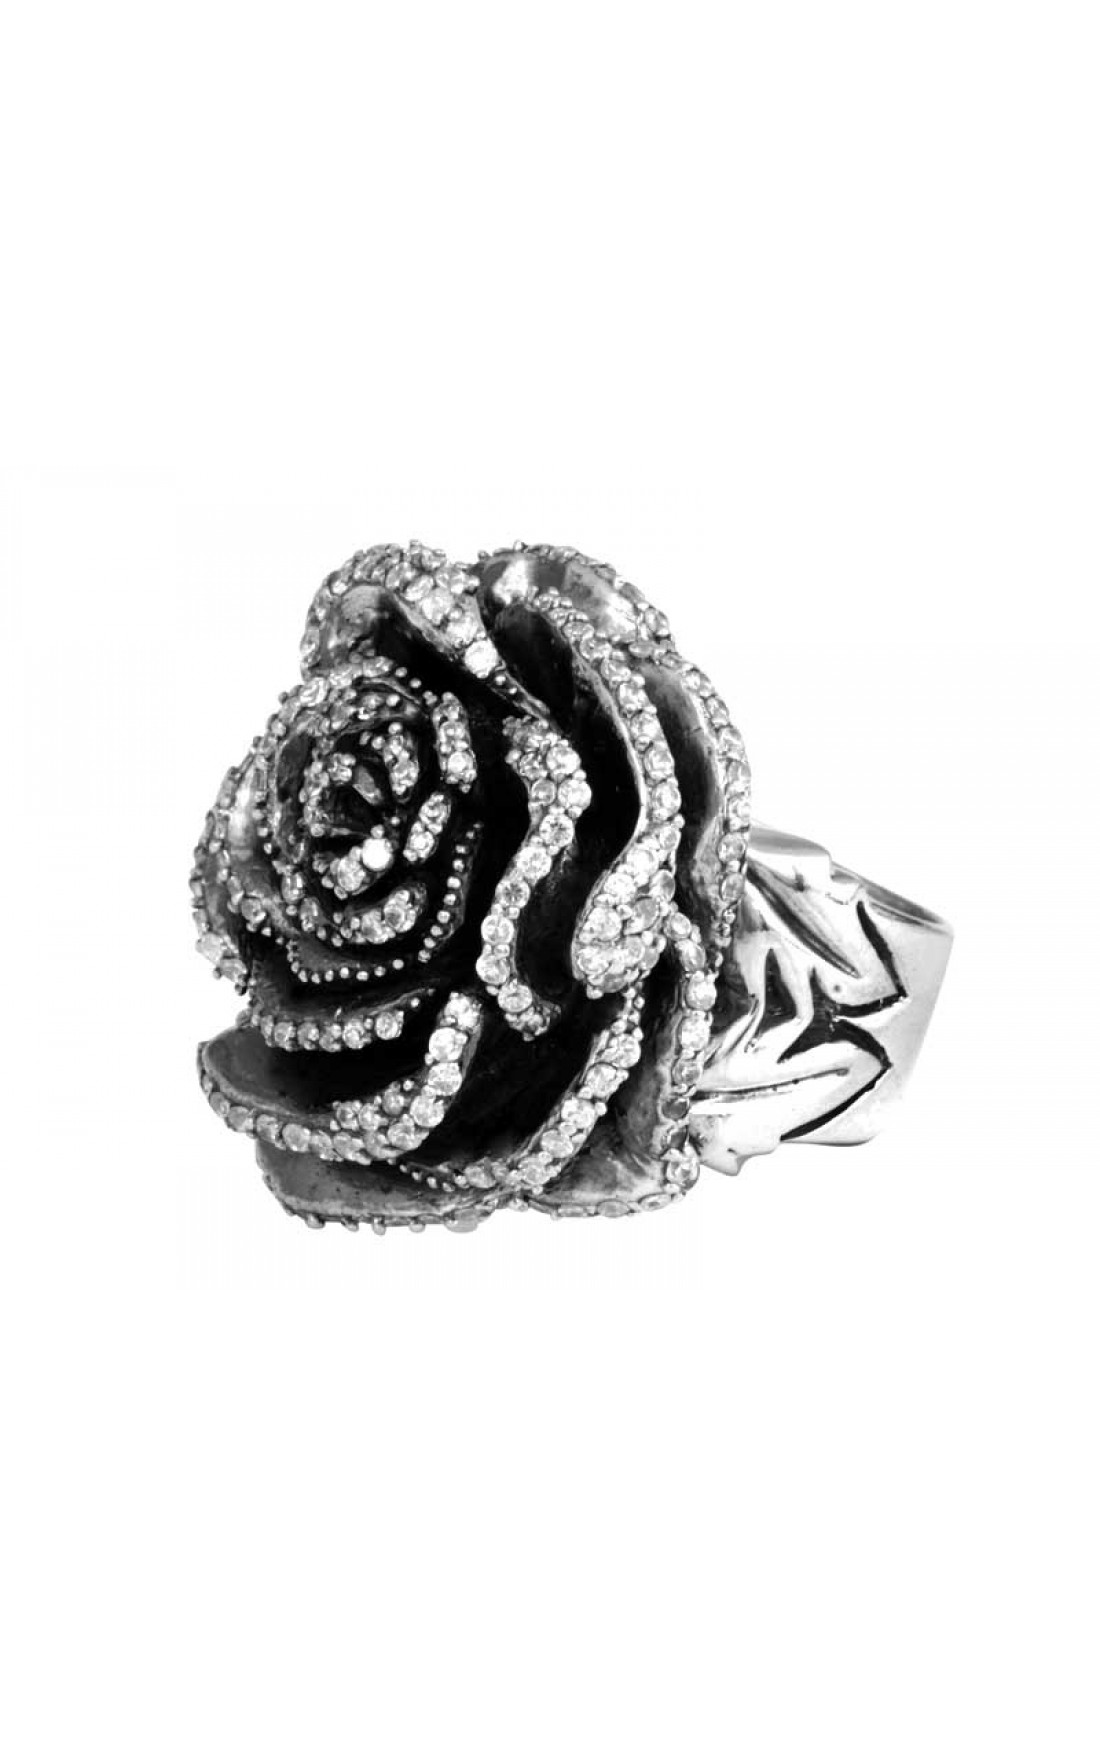 King Baby - Rose Ring White Cz (Q20-5076)